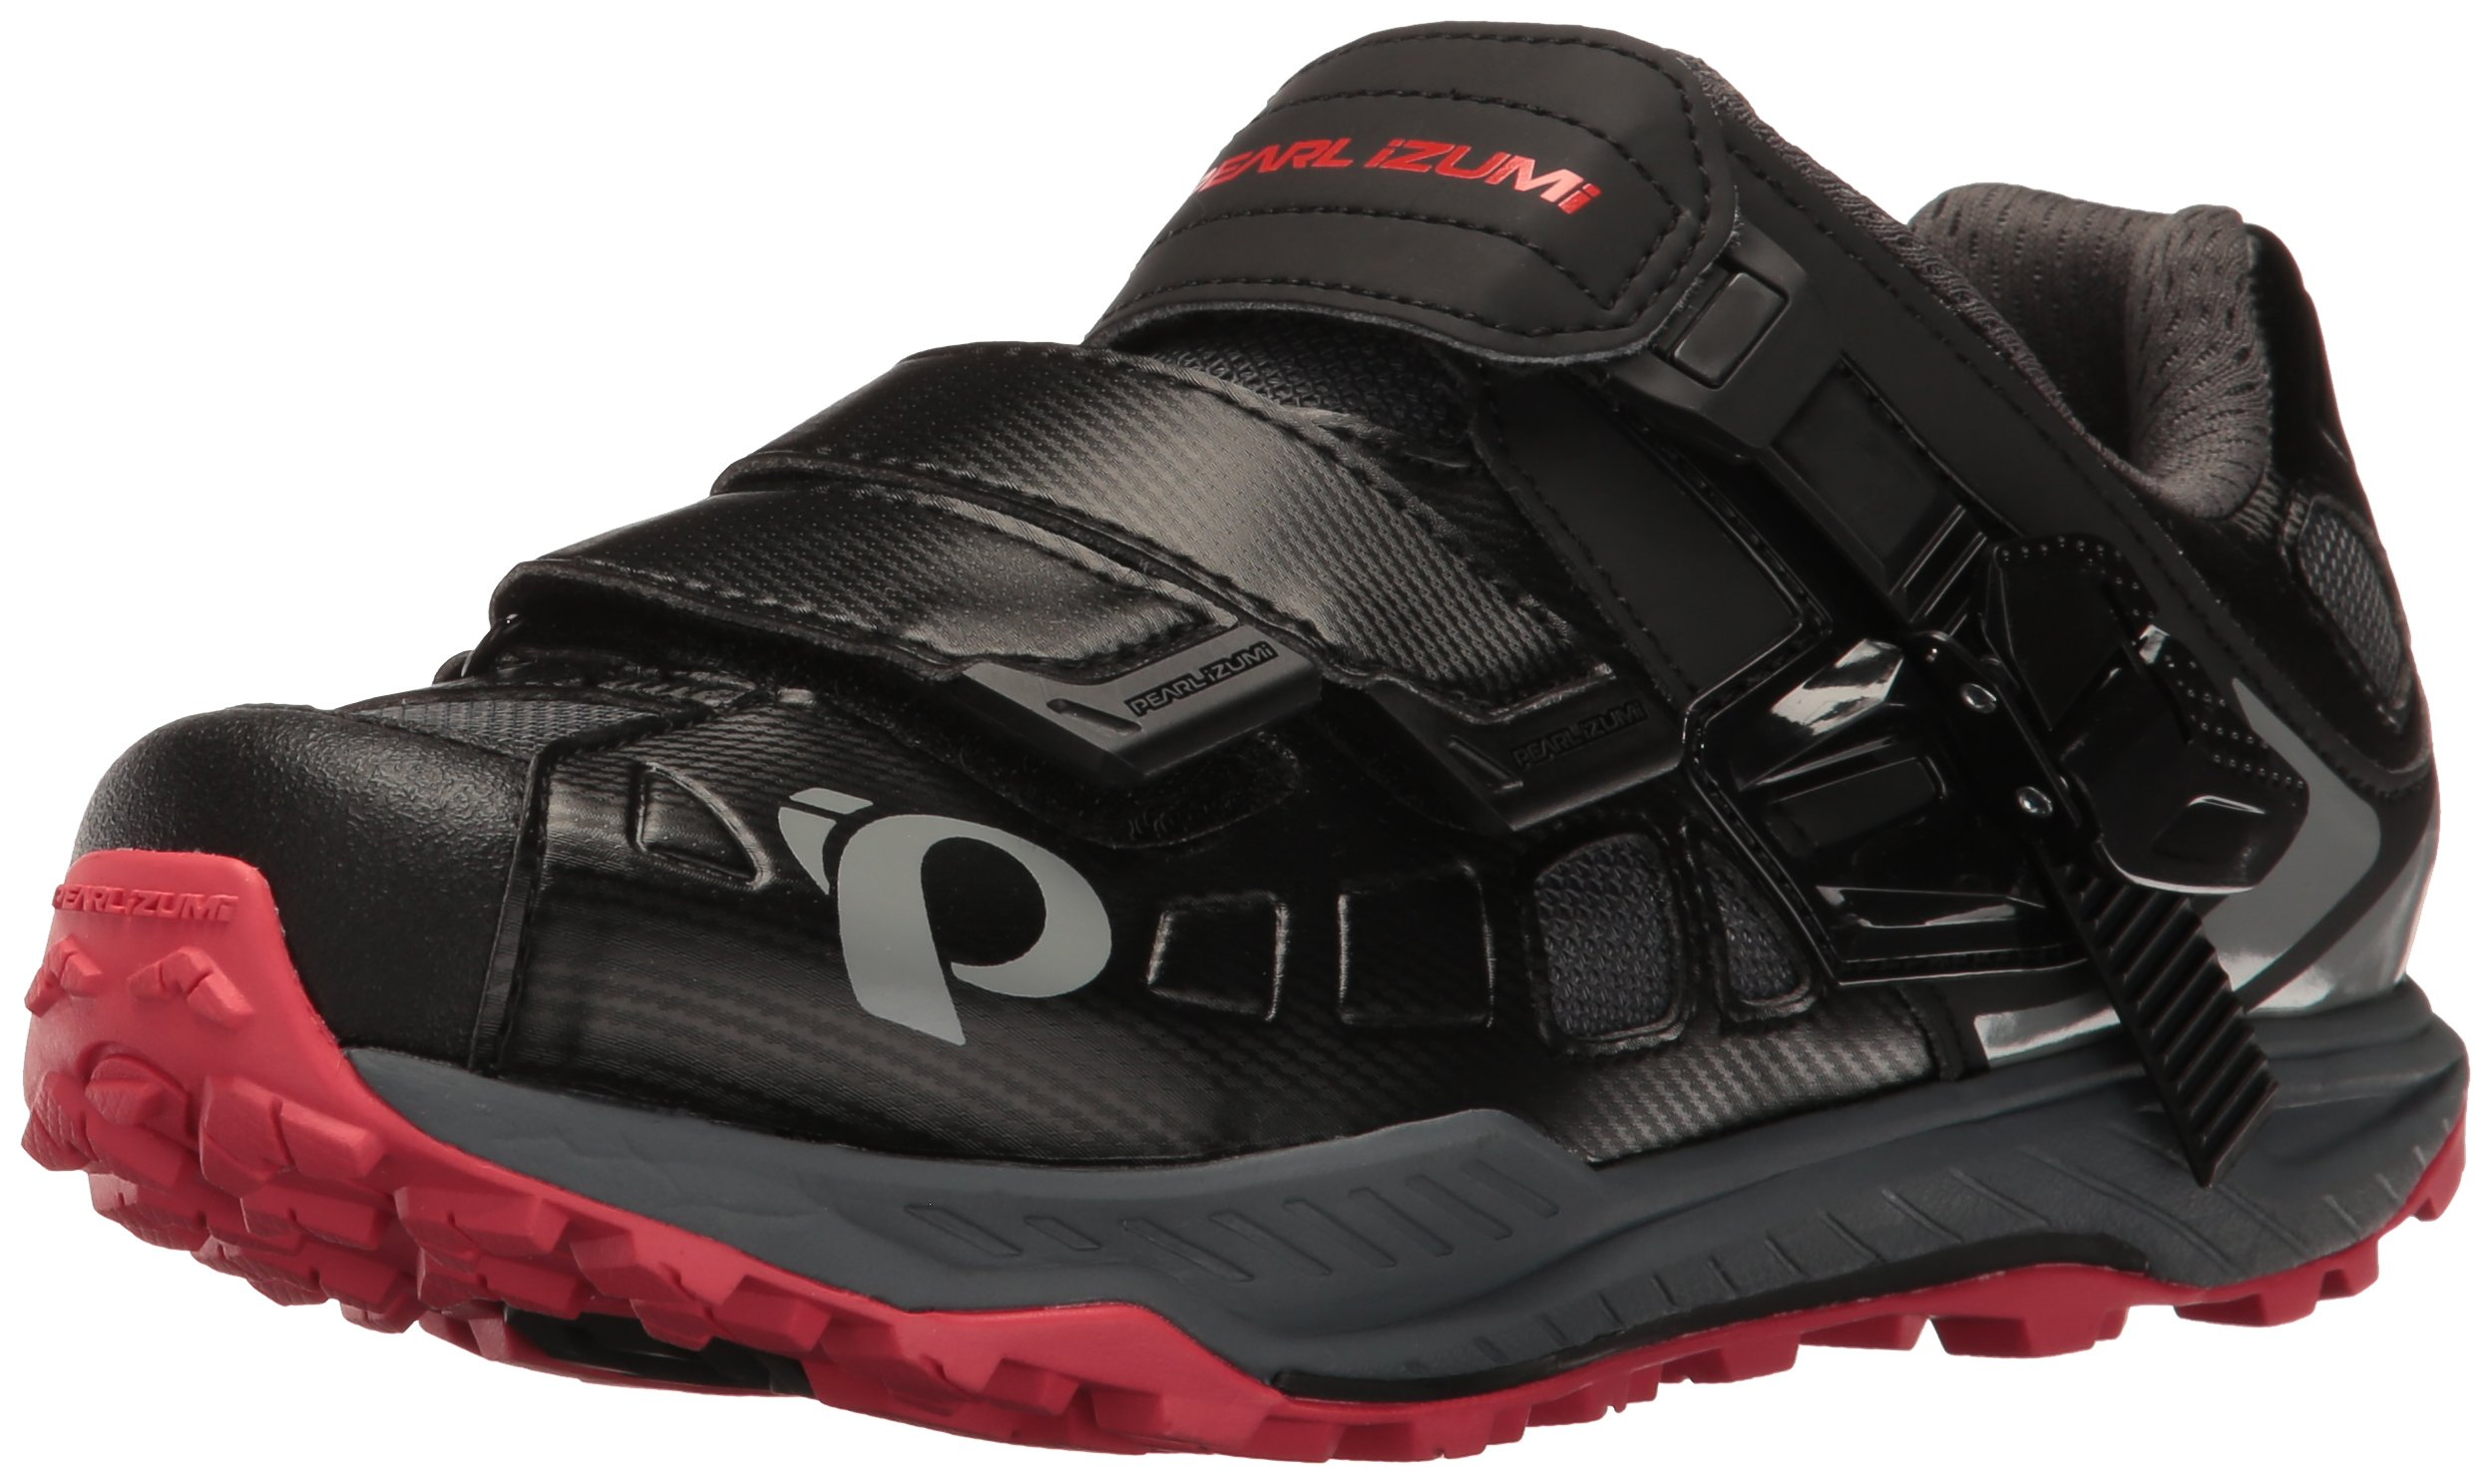 Pearl iZUMi Women's W X-Alp Enduro V5 Cycling Shoe, Black/Shadow Grey, 38 EU/6.8 B US